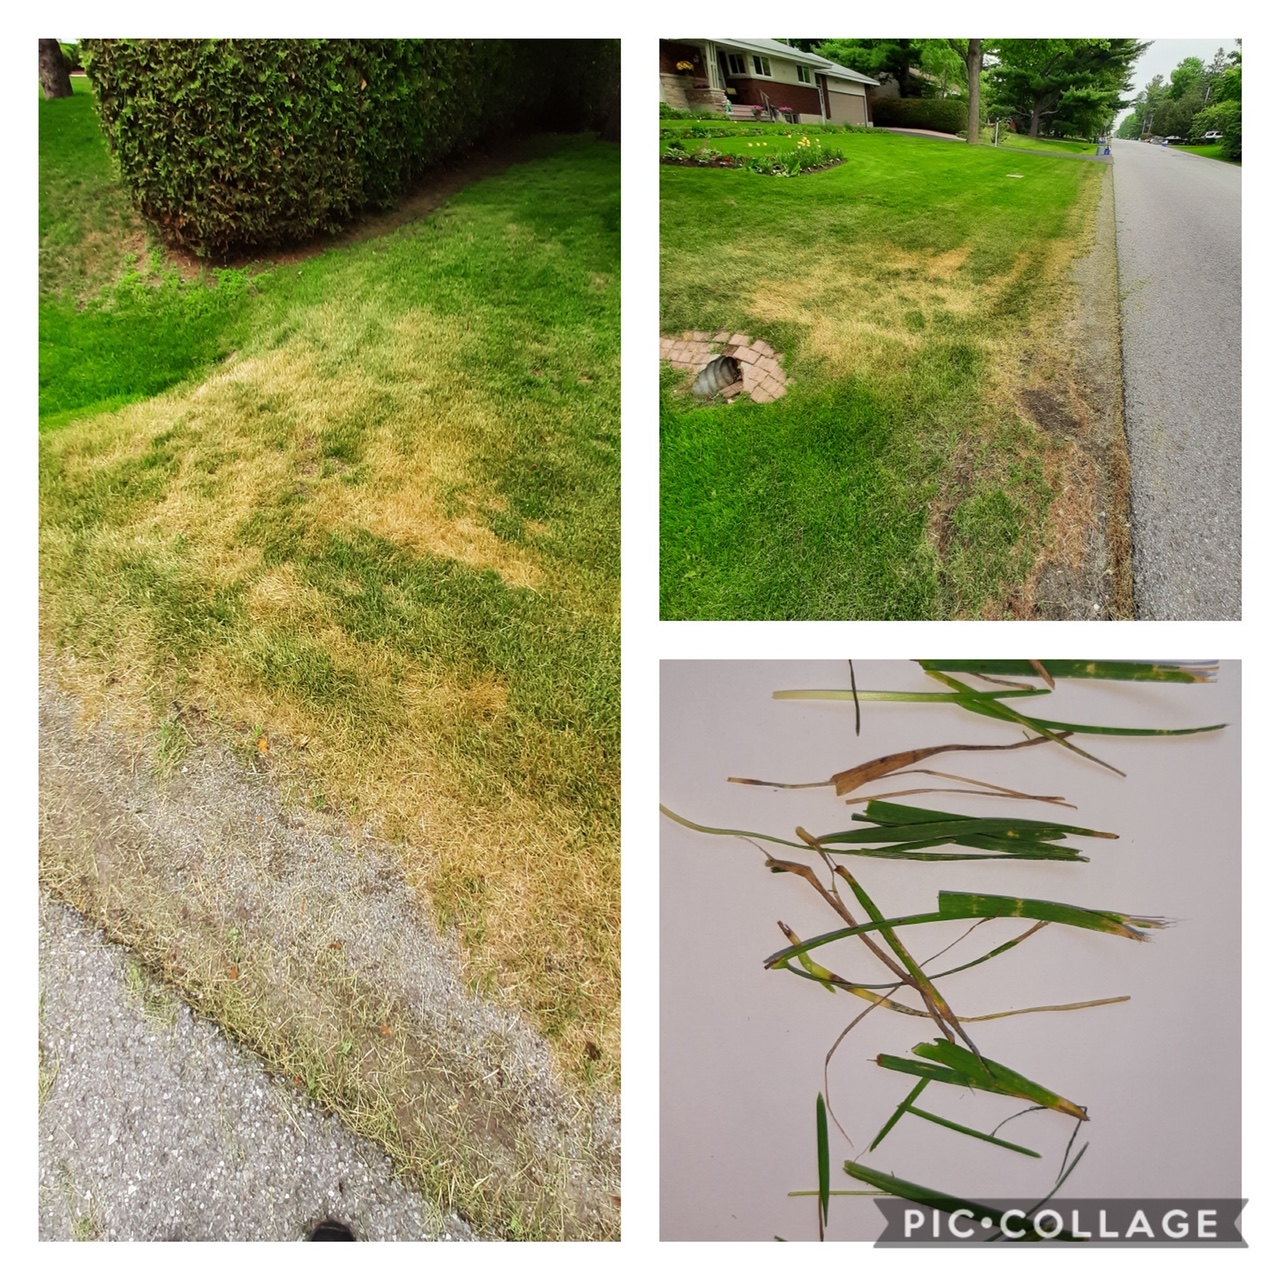 Extreme heat and dryness can lead to mower damage.